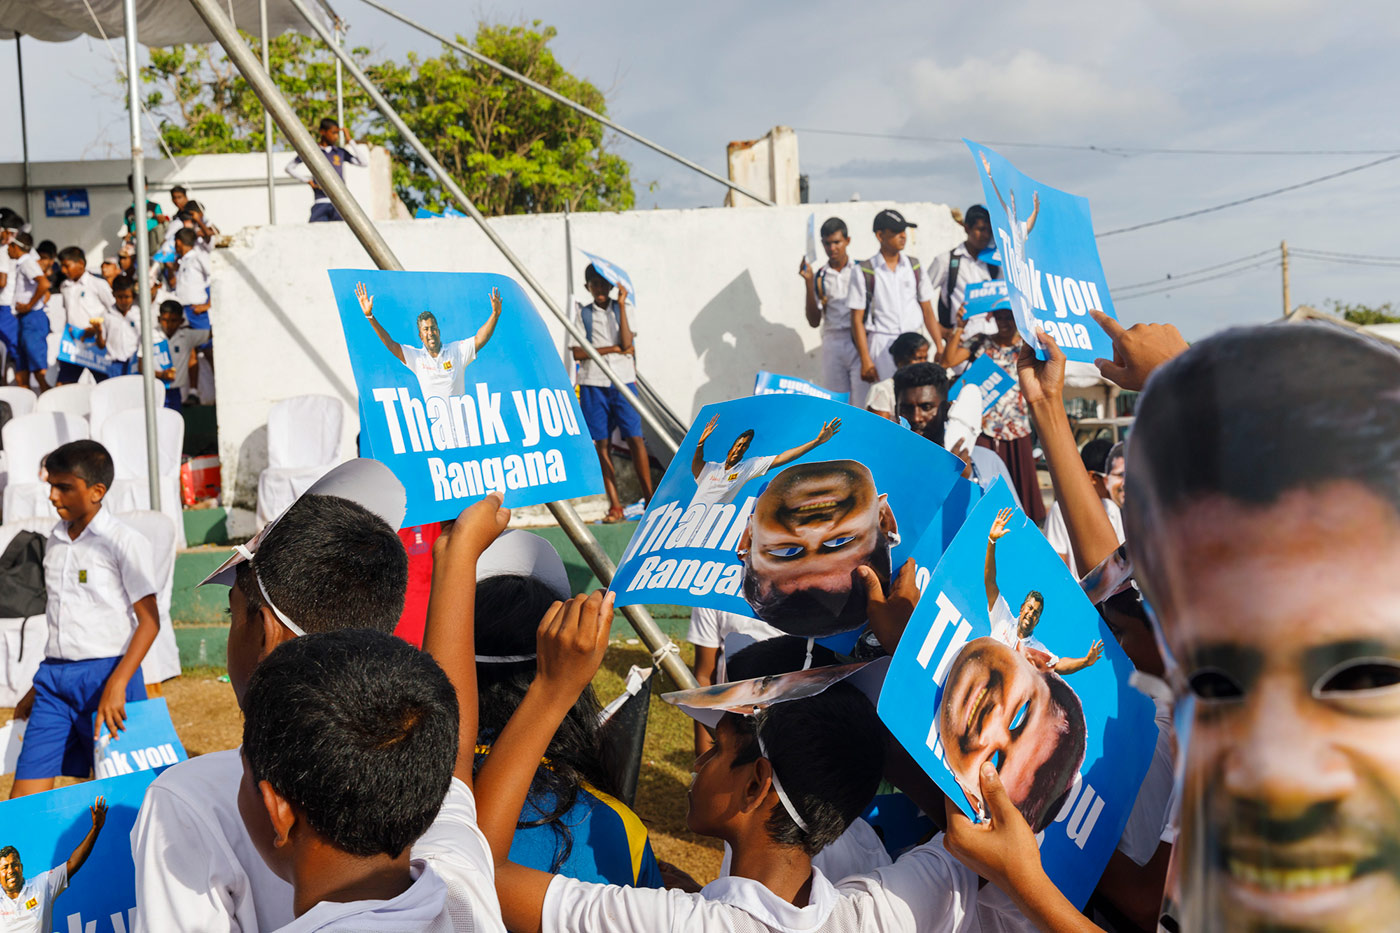 Herath's army: schoolkids cheer for the Sri Lankan champion bowler